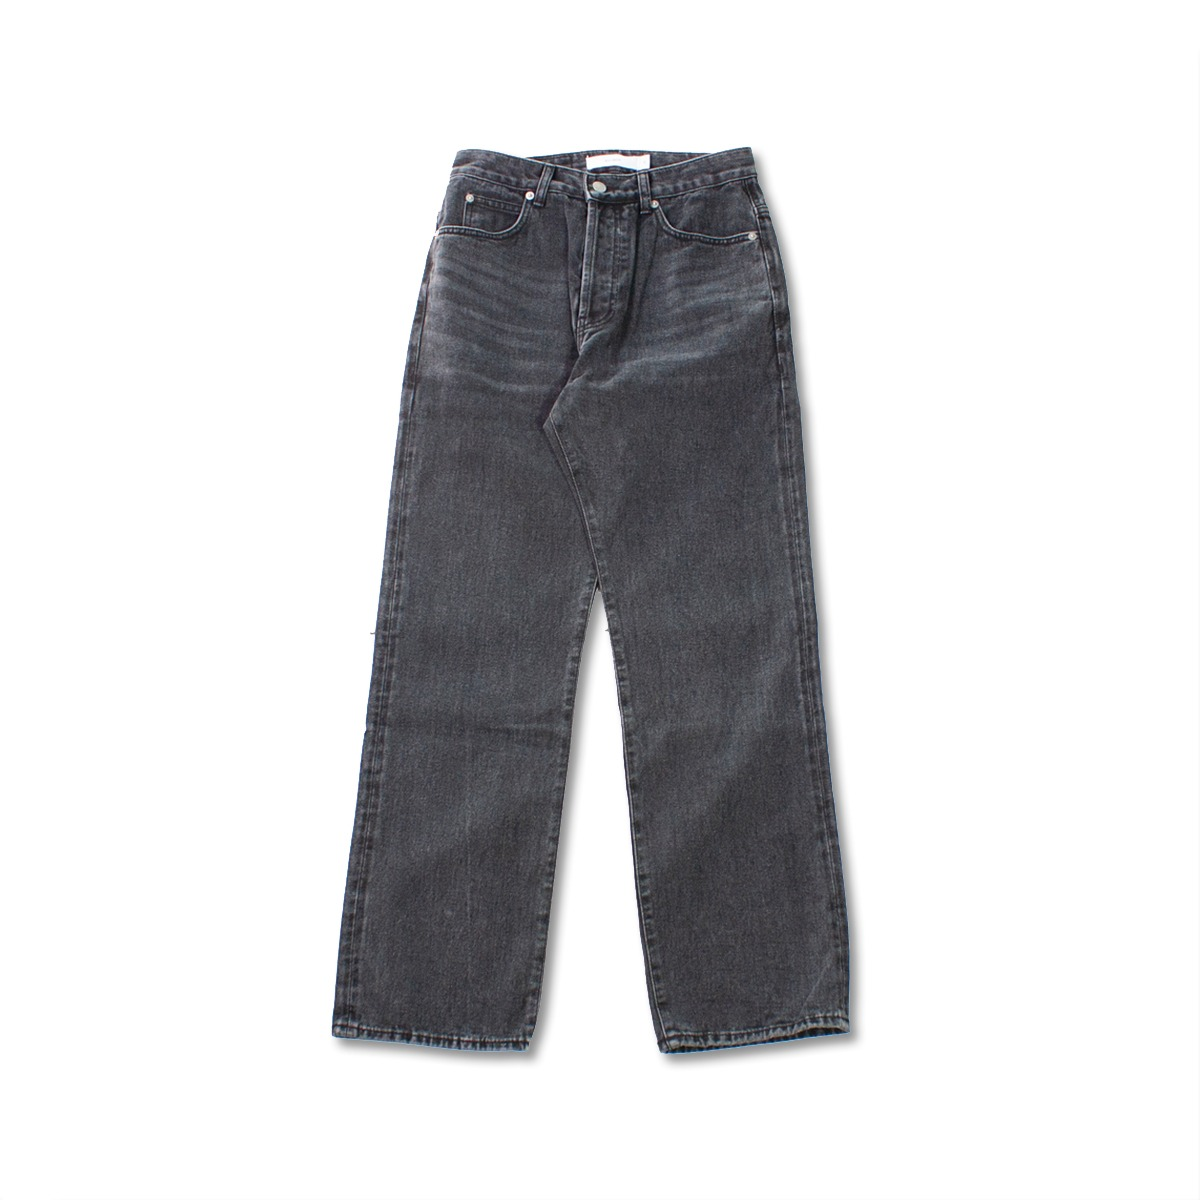 [8DIVISION] STRAIGHT LEG JEANS 'GREY'